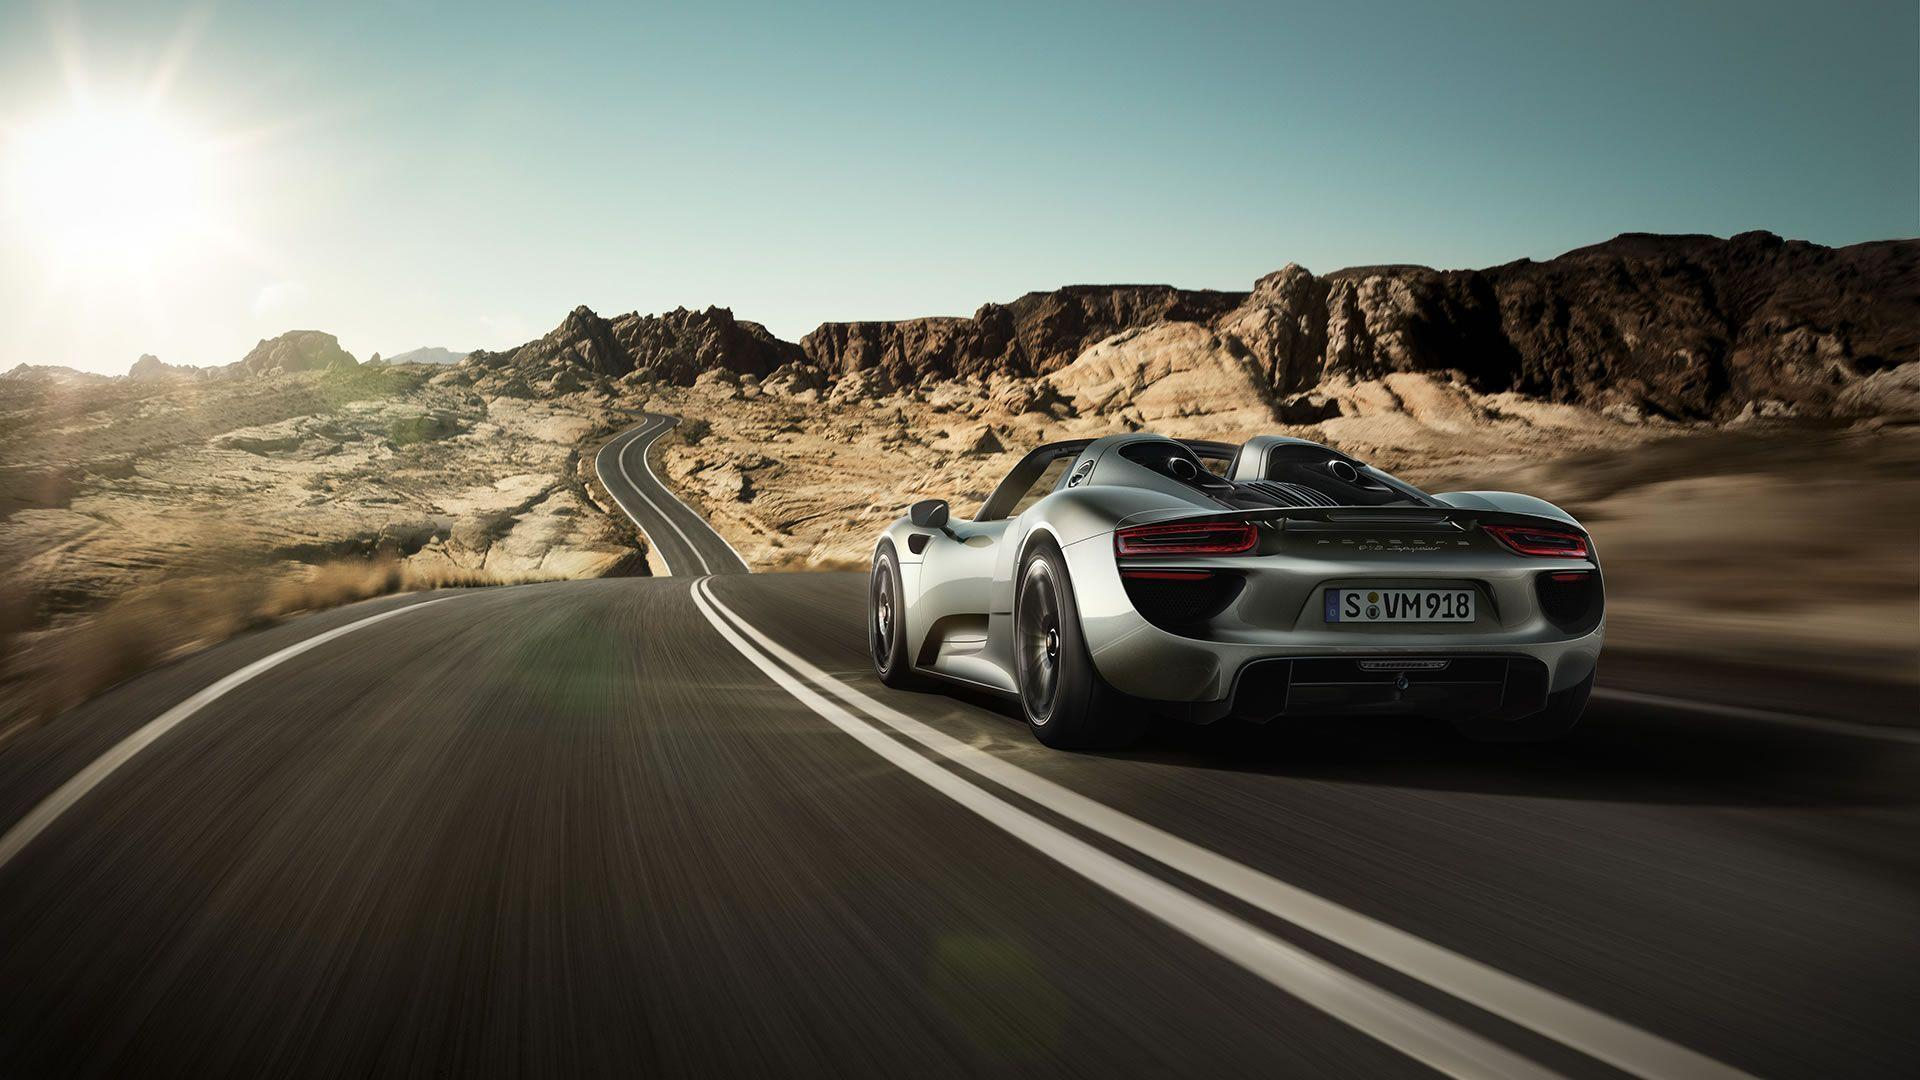 2015 Porsche 918 Spyder Wallpaper